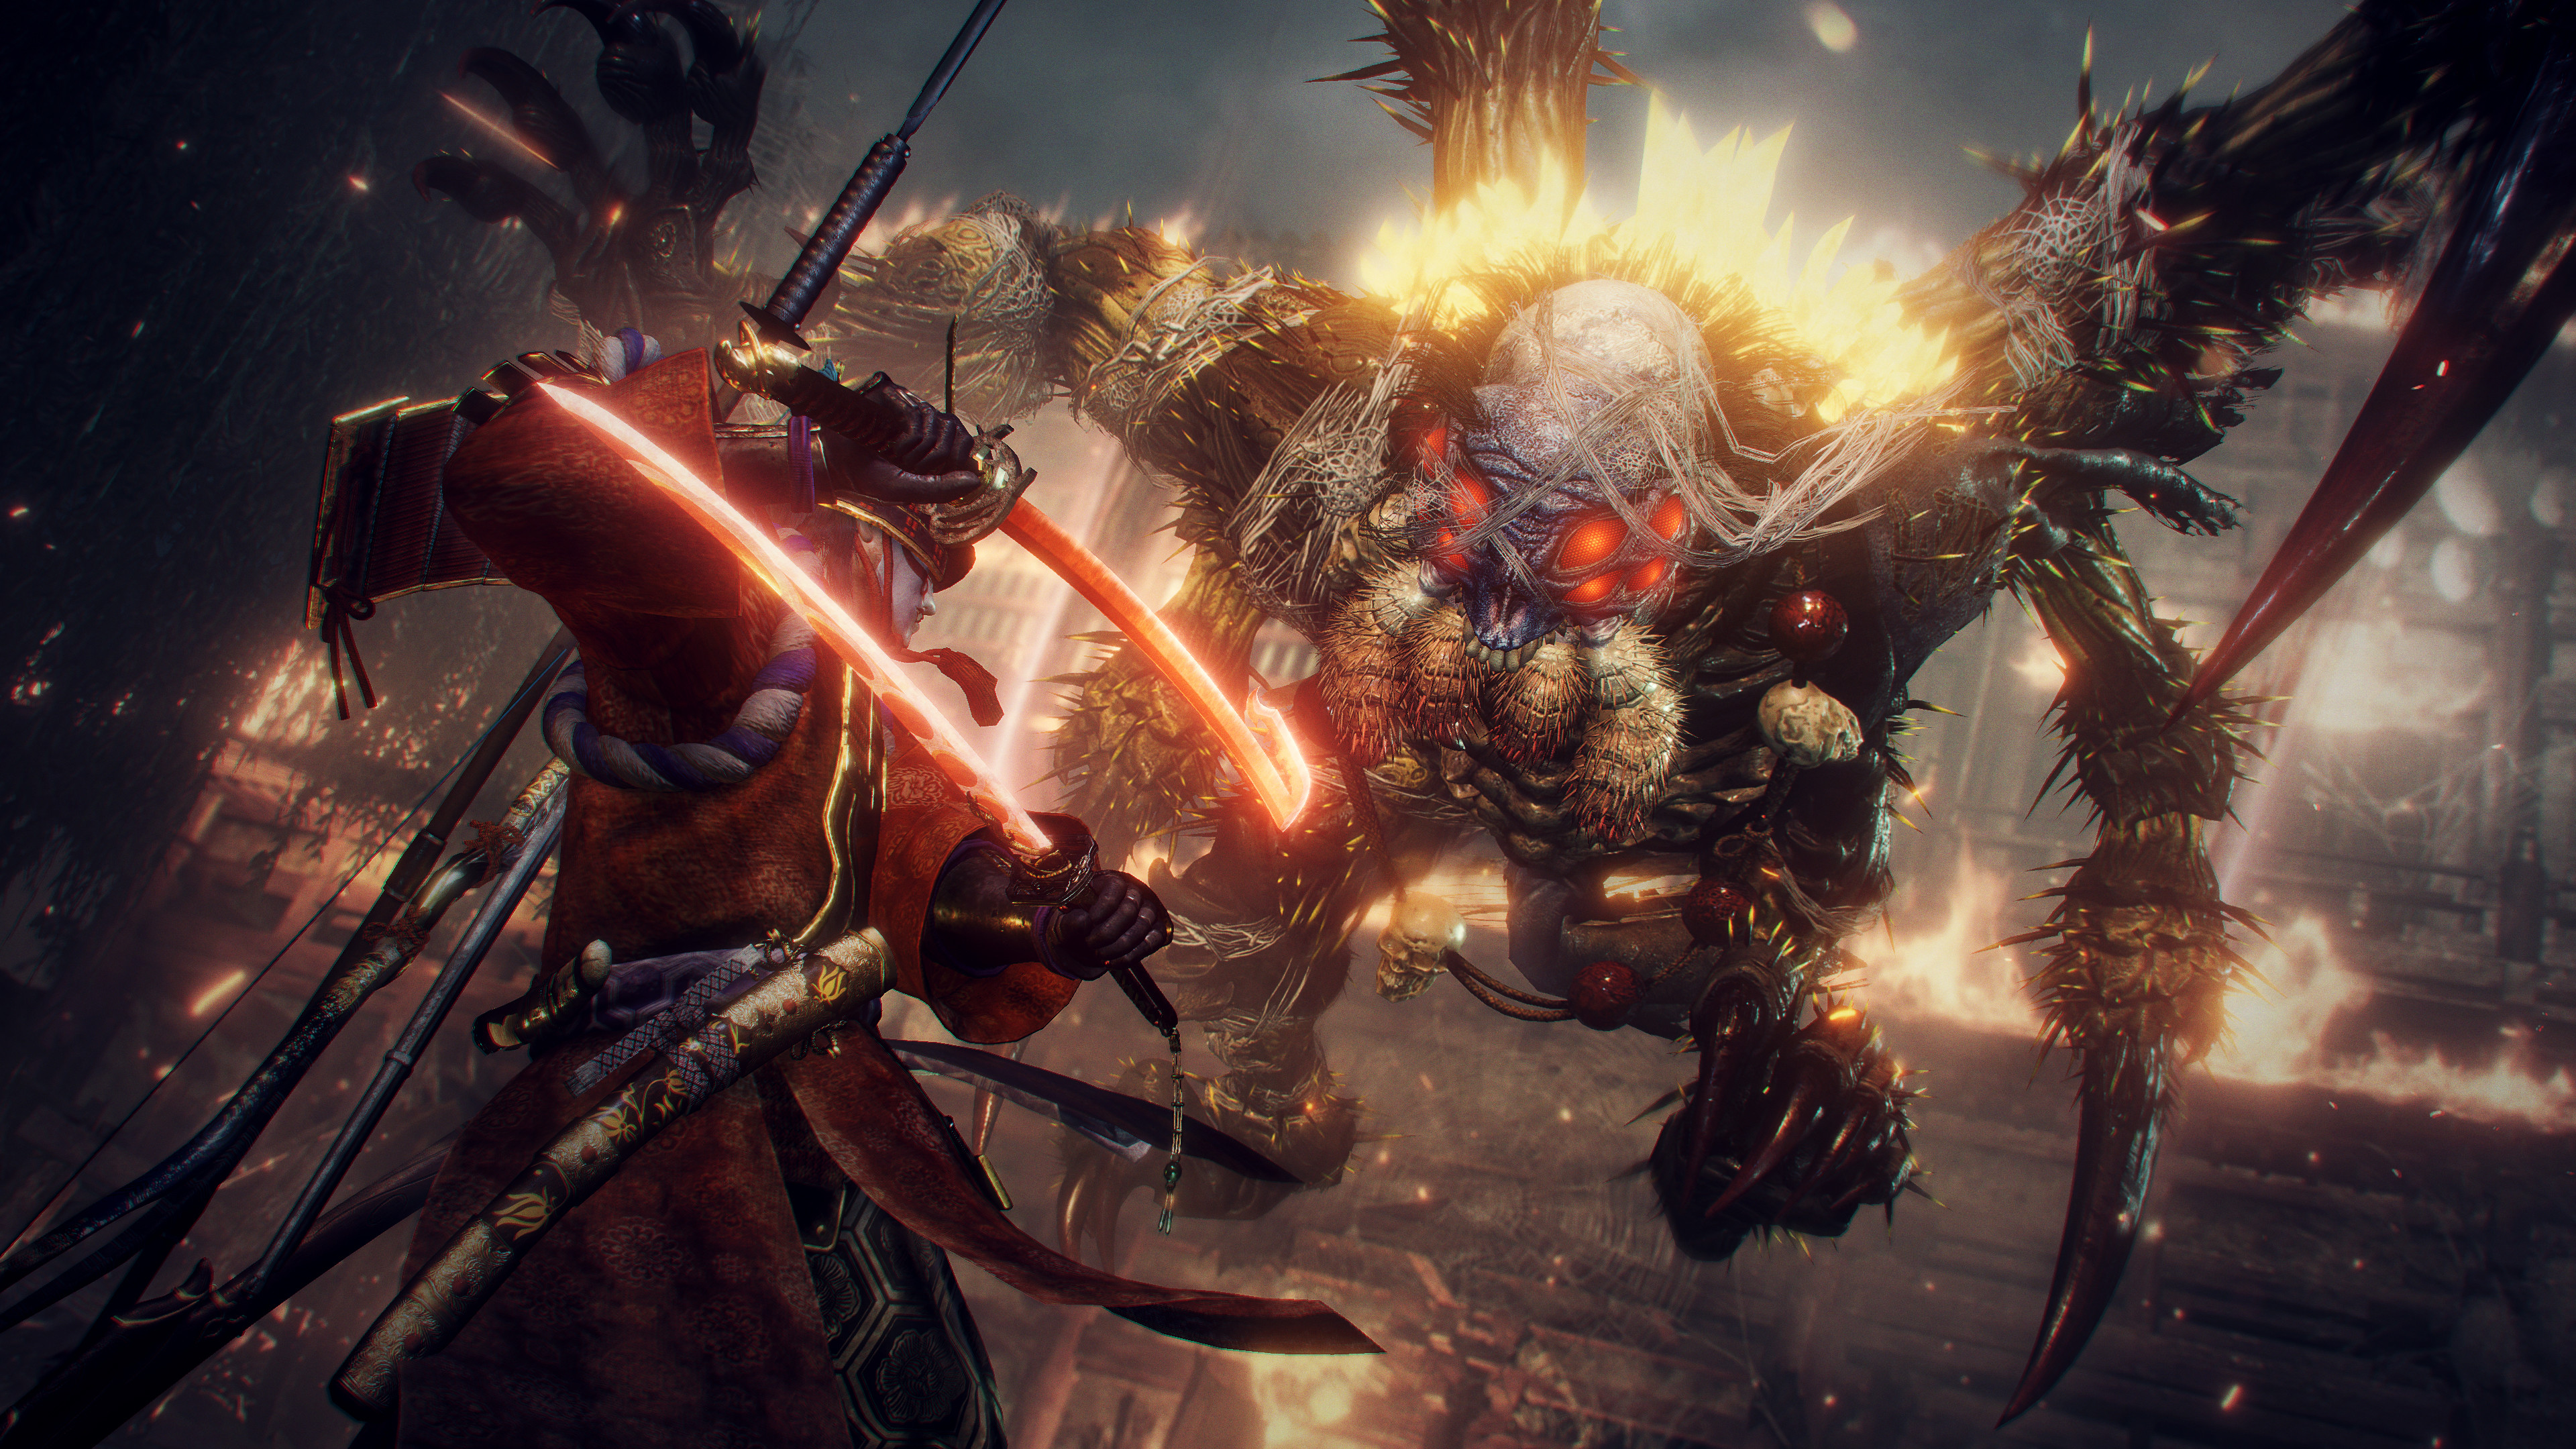 Nioh 2 is going all-in on PC settings